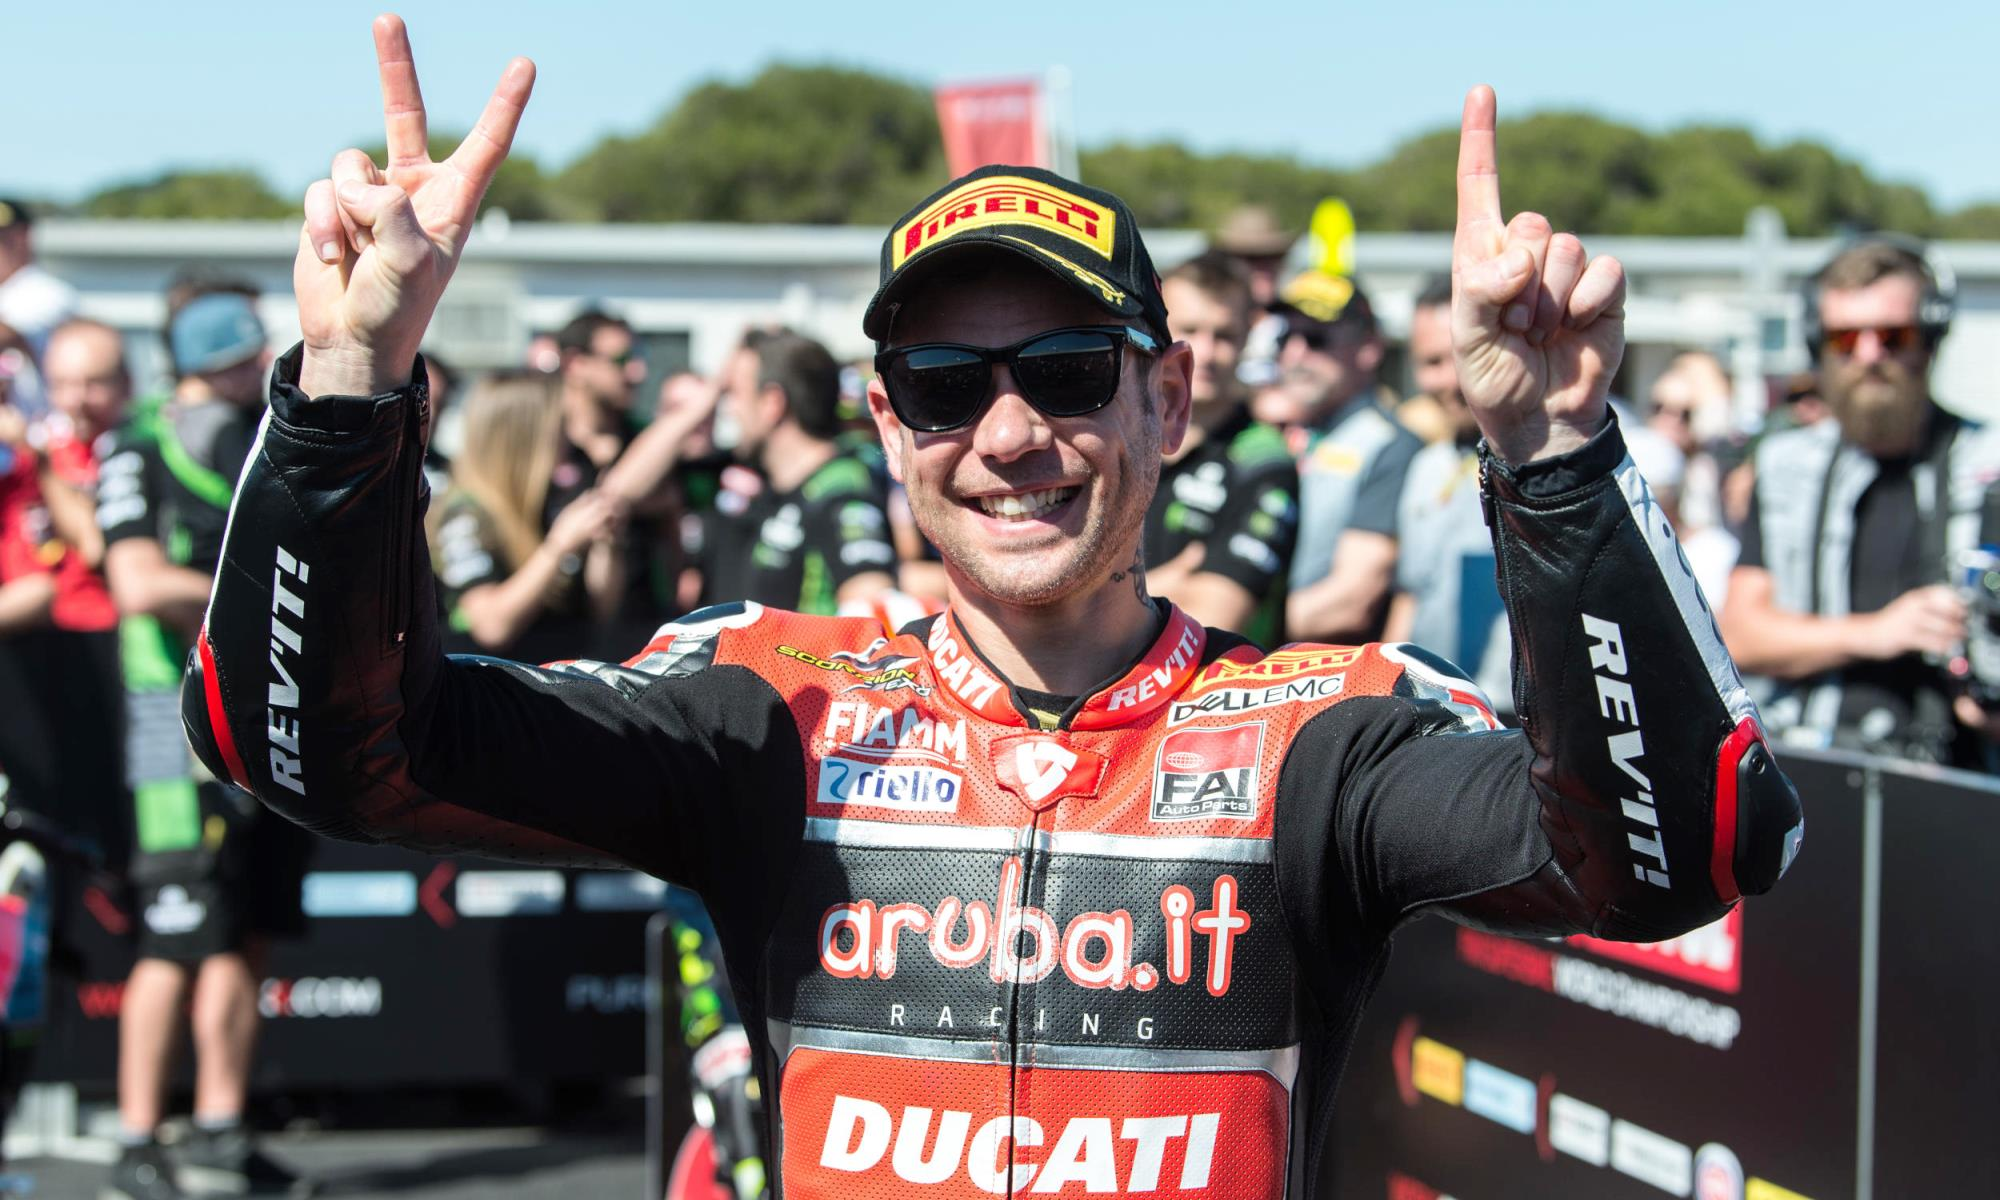 Alvaro Bautista has dominated World SBK in 2019